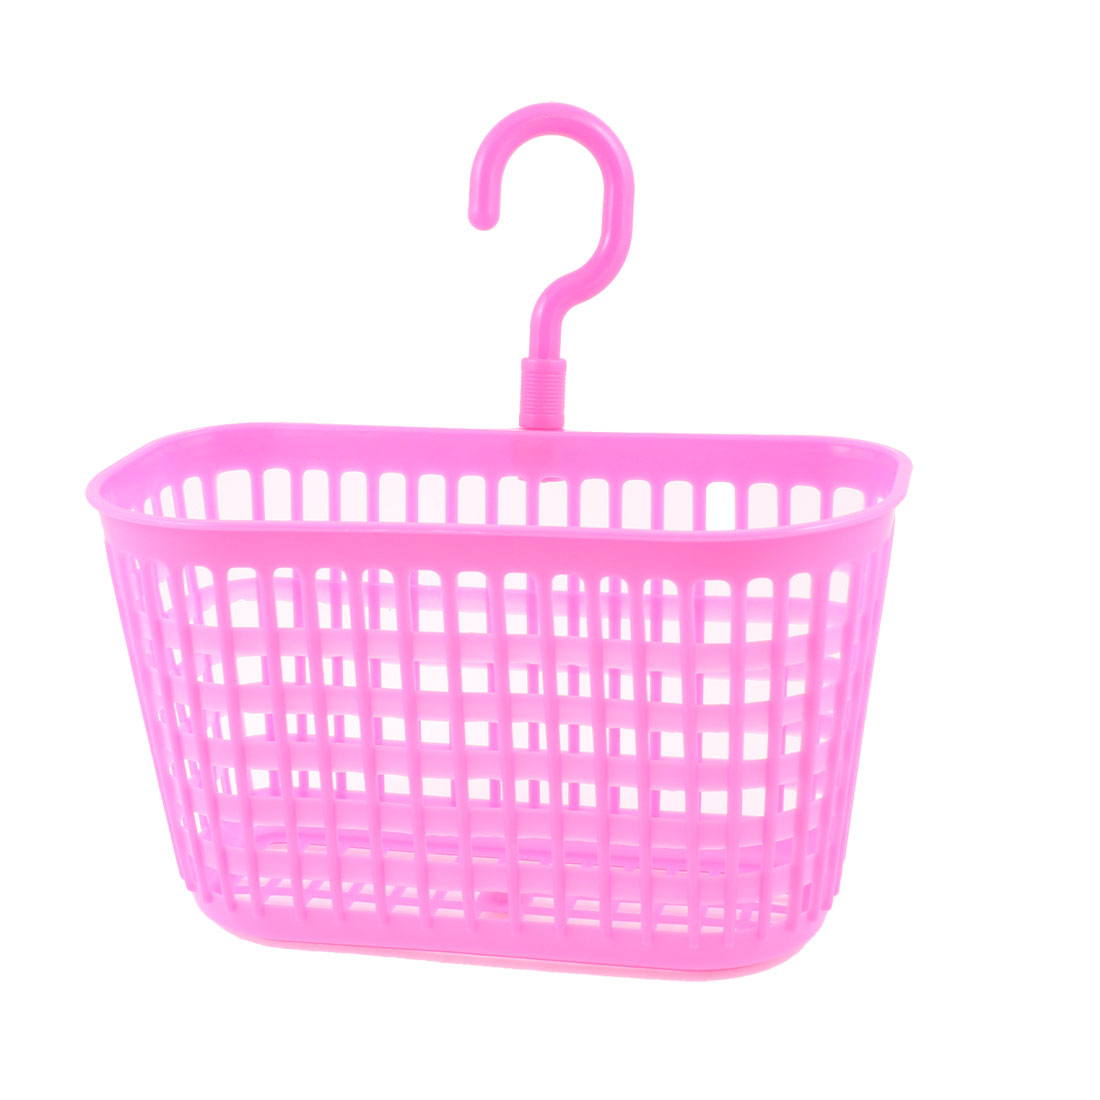 Household Hollow Out Rose Pink Plastic Multifunction Basket Storage Holder